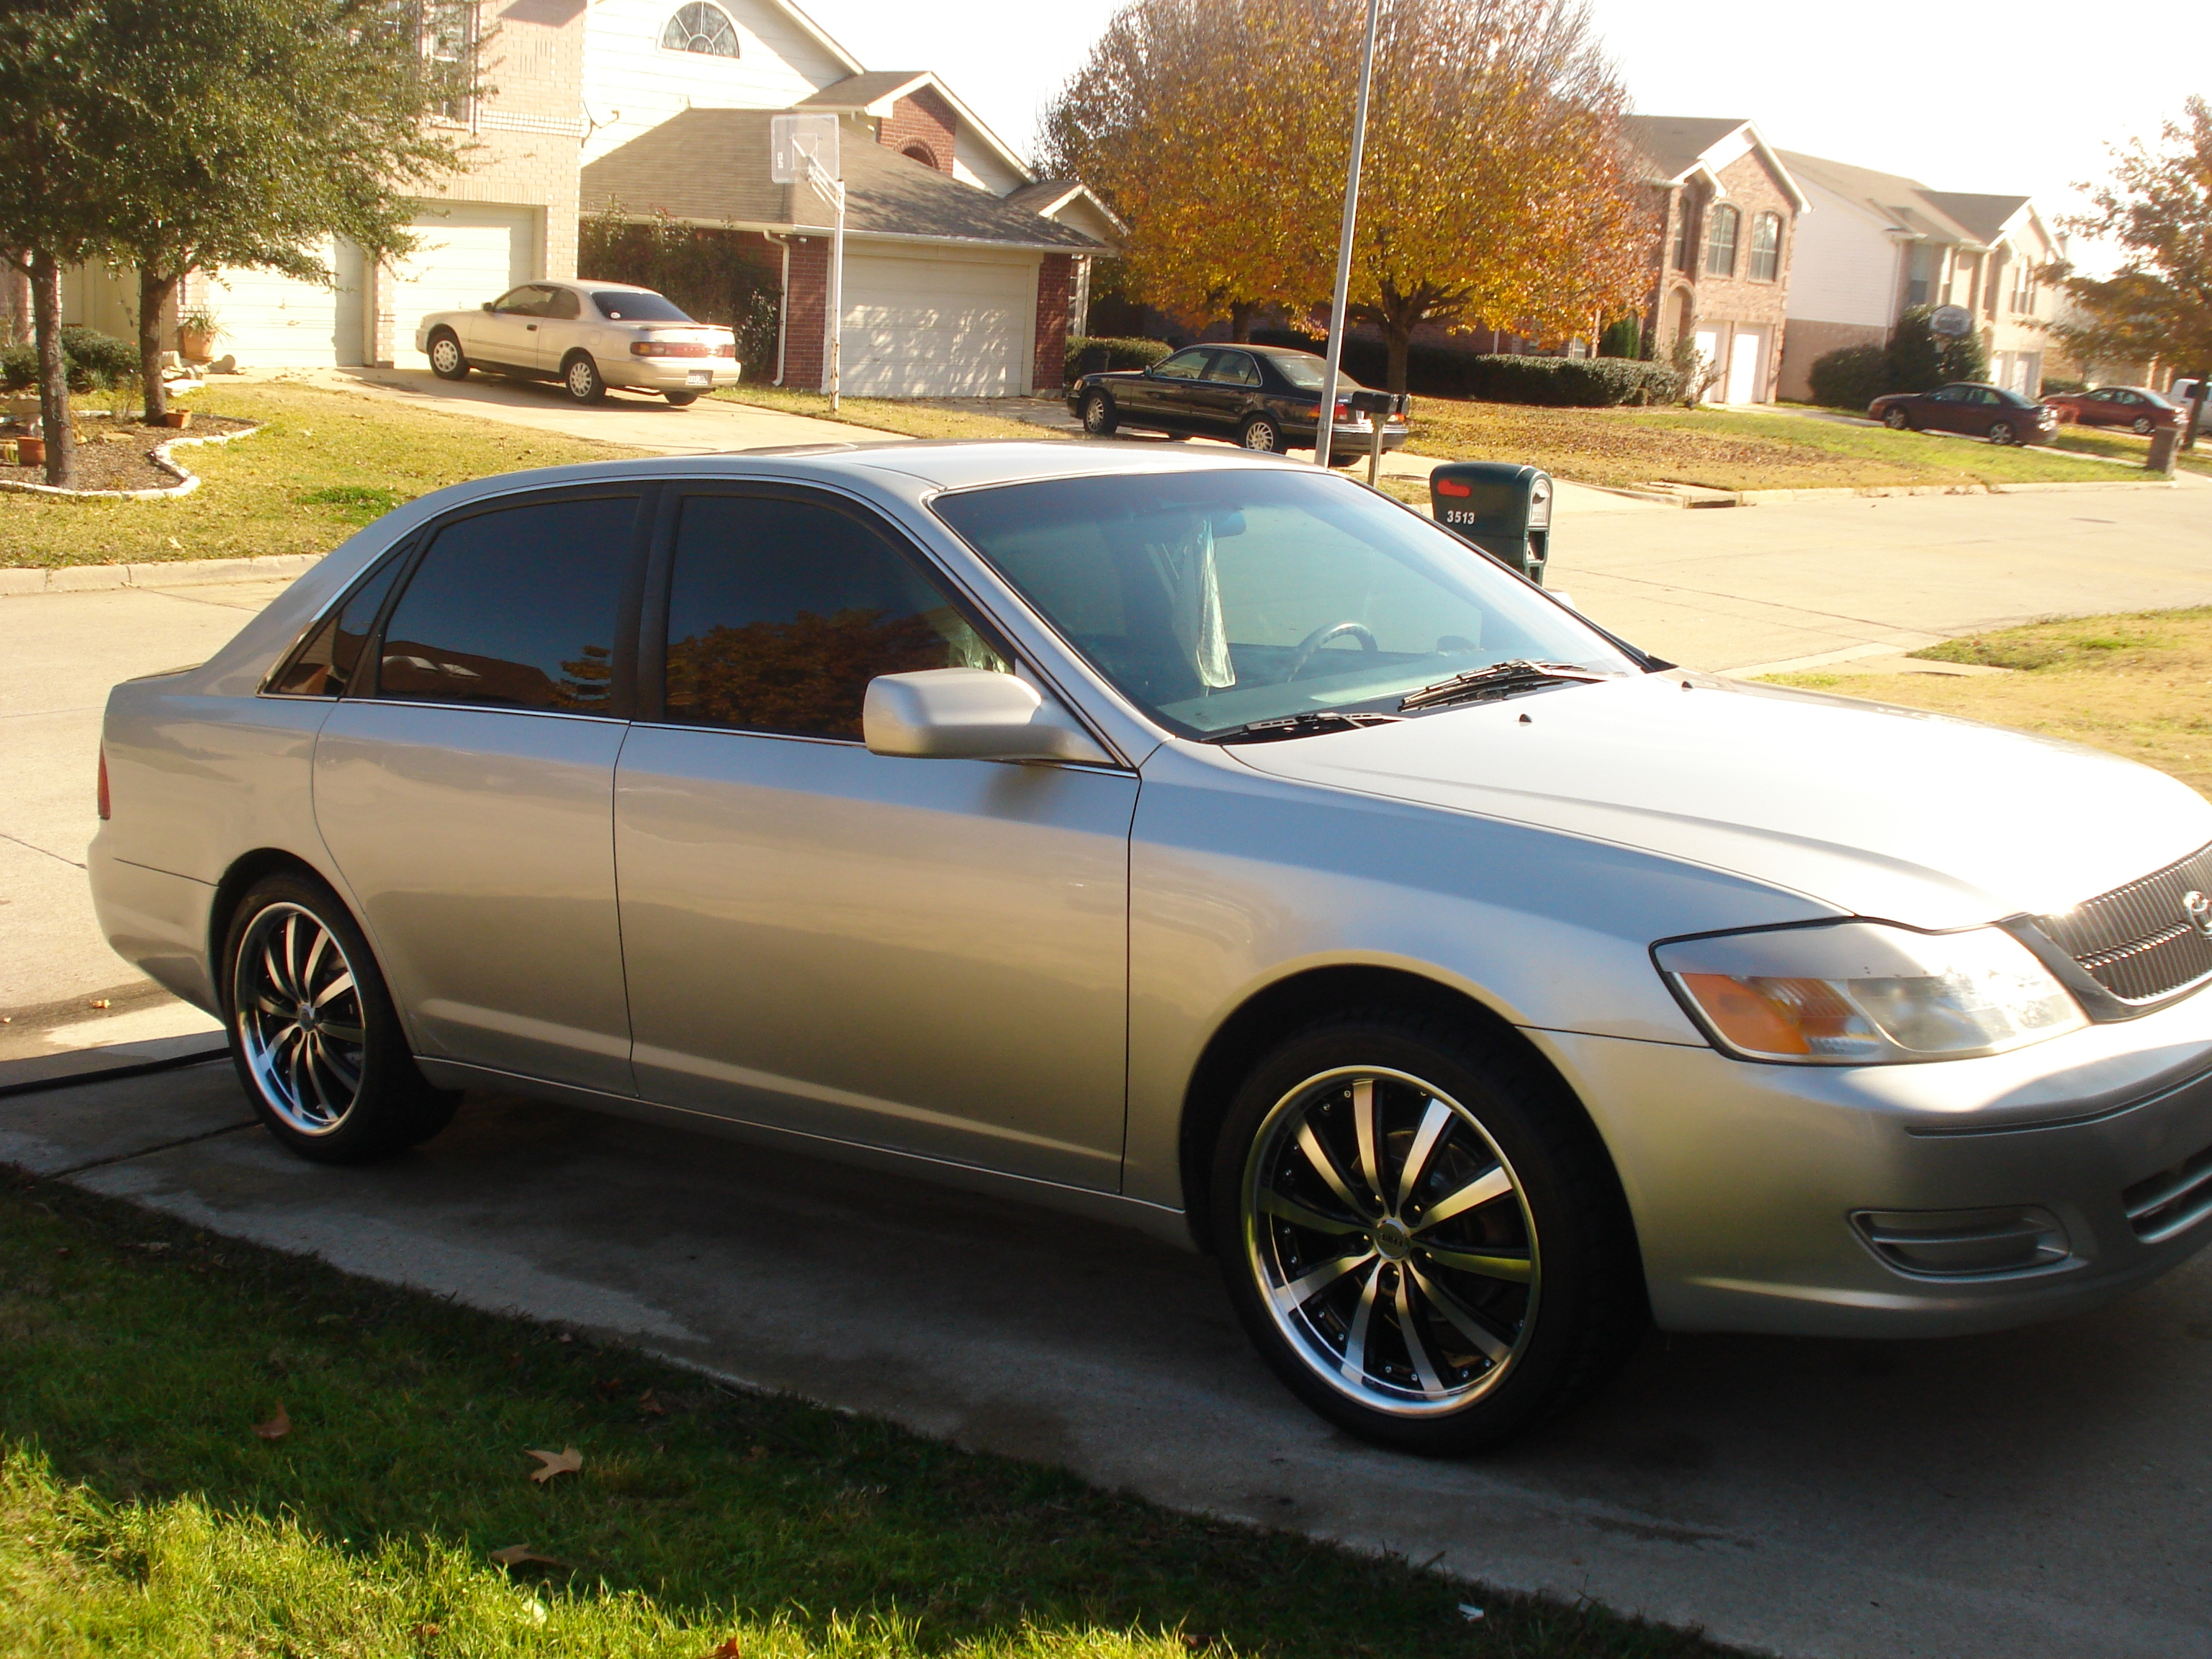 olskoolchevys 2000 toyota avalon 39 s photo gallery at cardomain. Black Bedroom Furniture Sets. Home Design Ideas